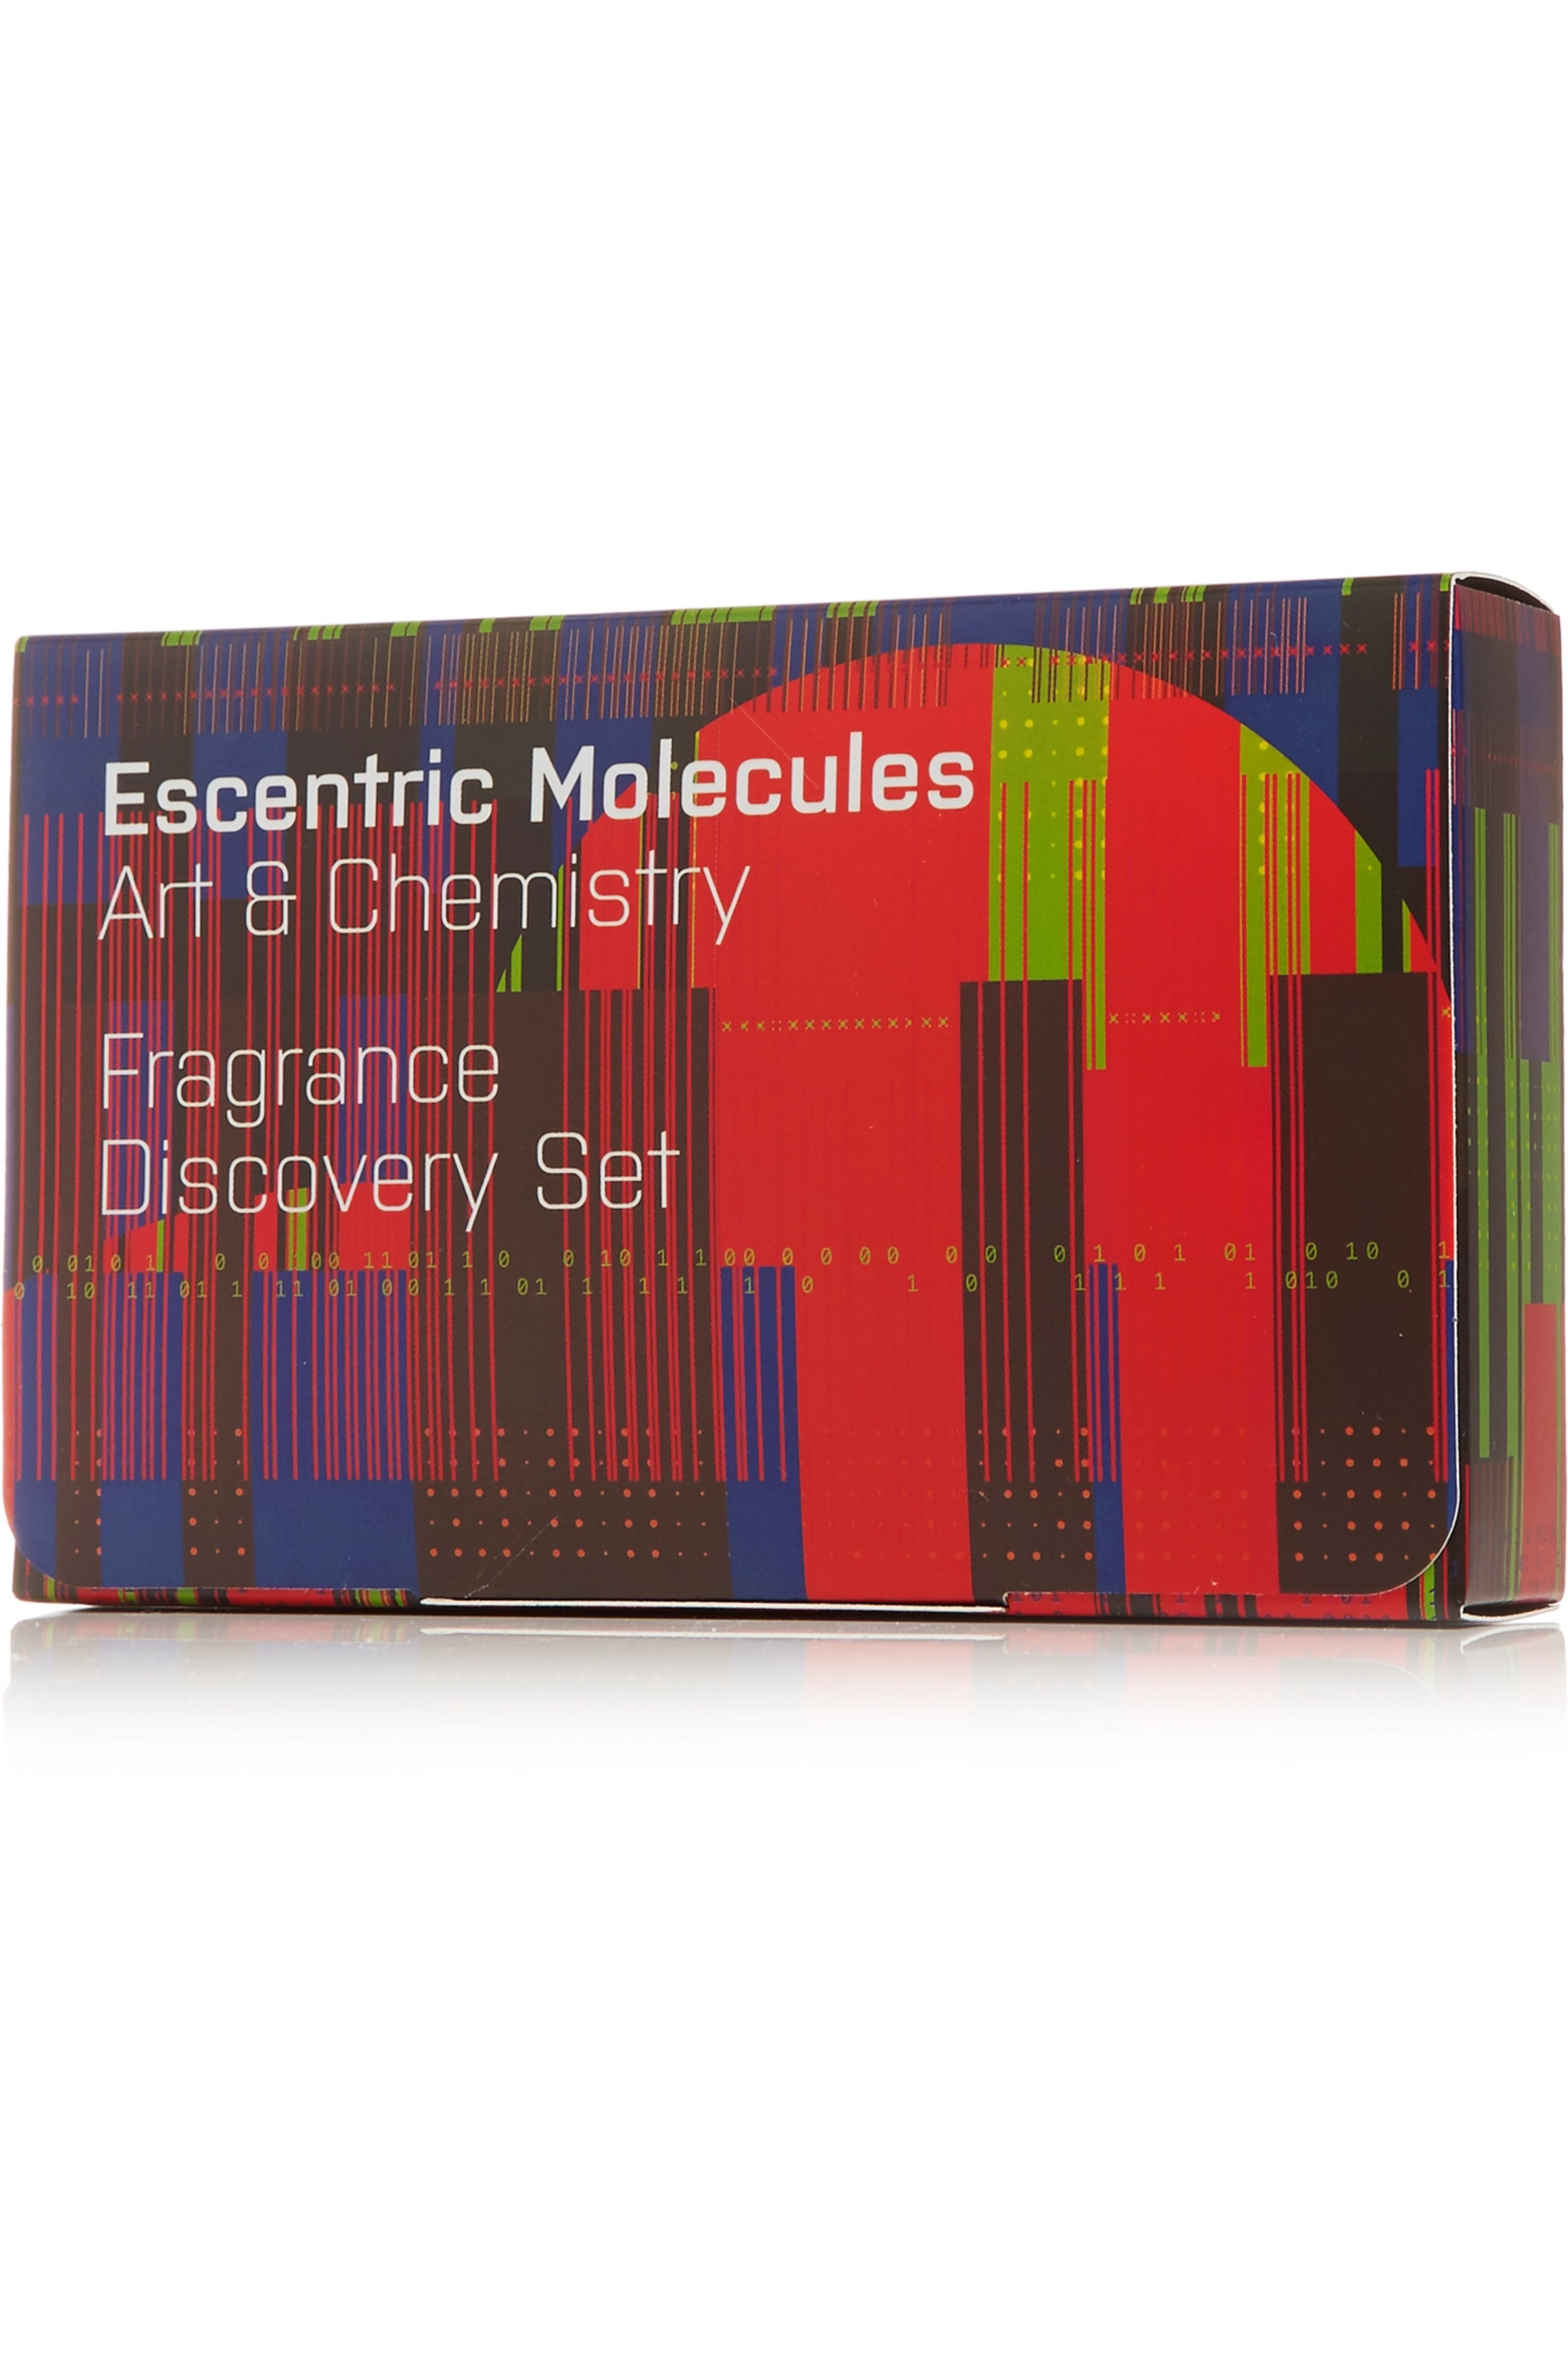 Escentric Molecules Discovery Set, 8 x 2ml